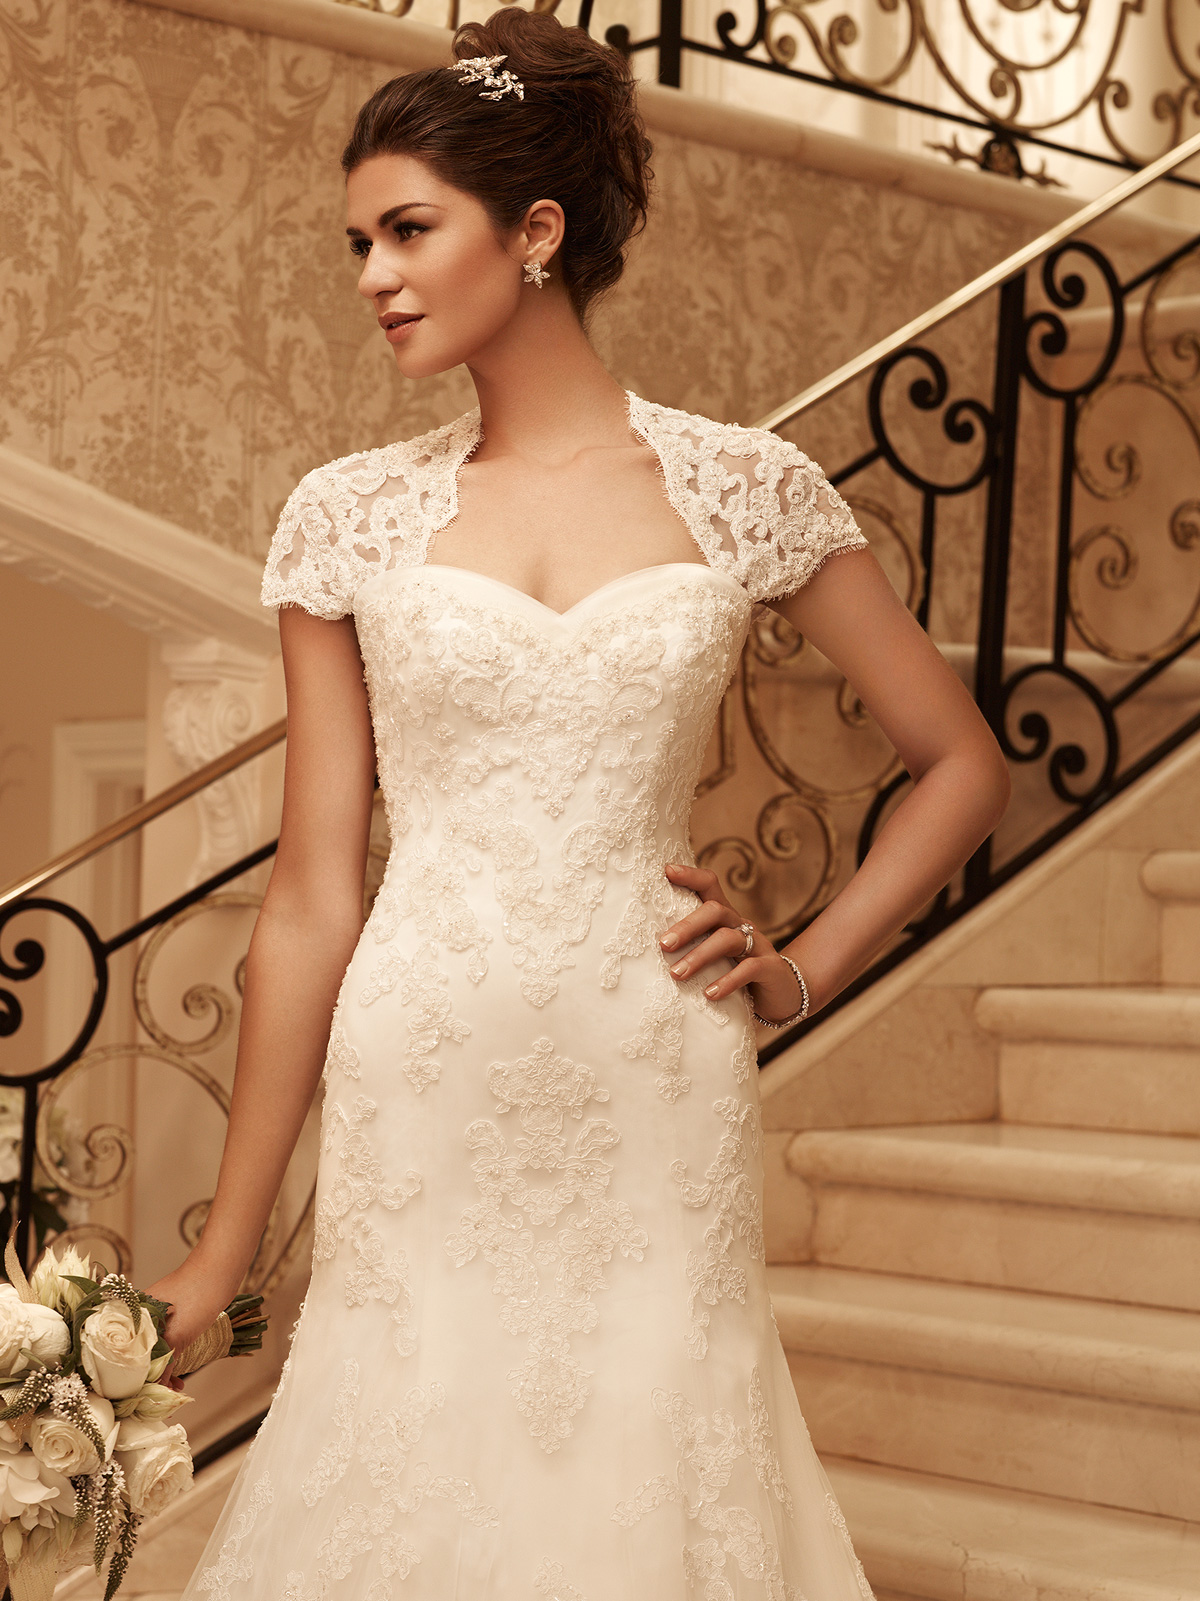 Short Sleeve Fit And Flare Casablanca Bridal Gown 2102 Dimitradesigns Com